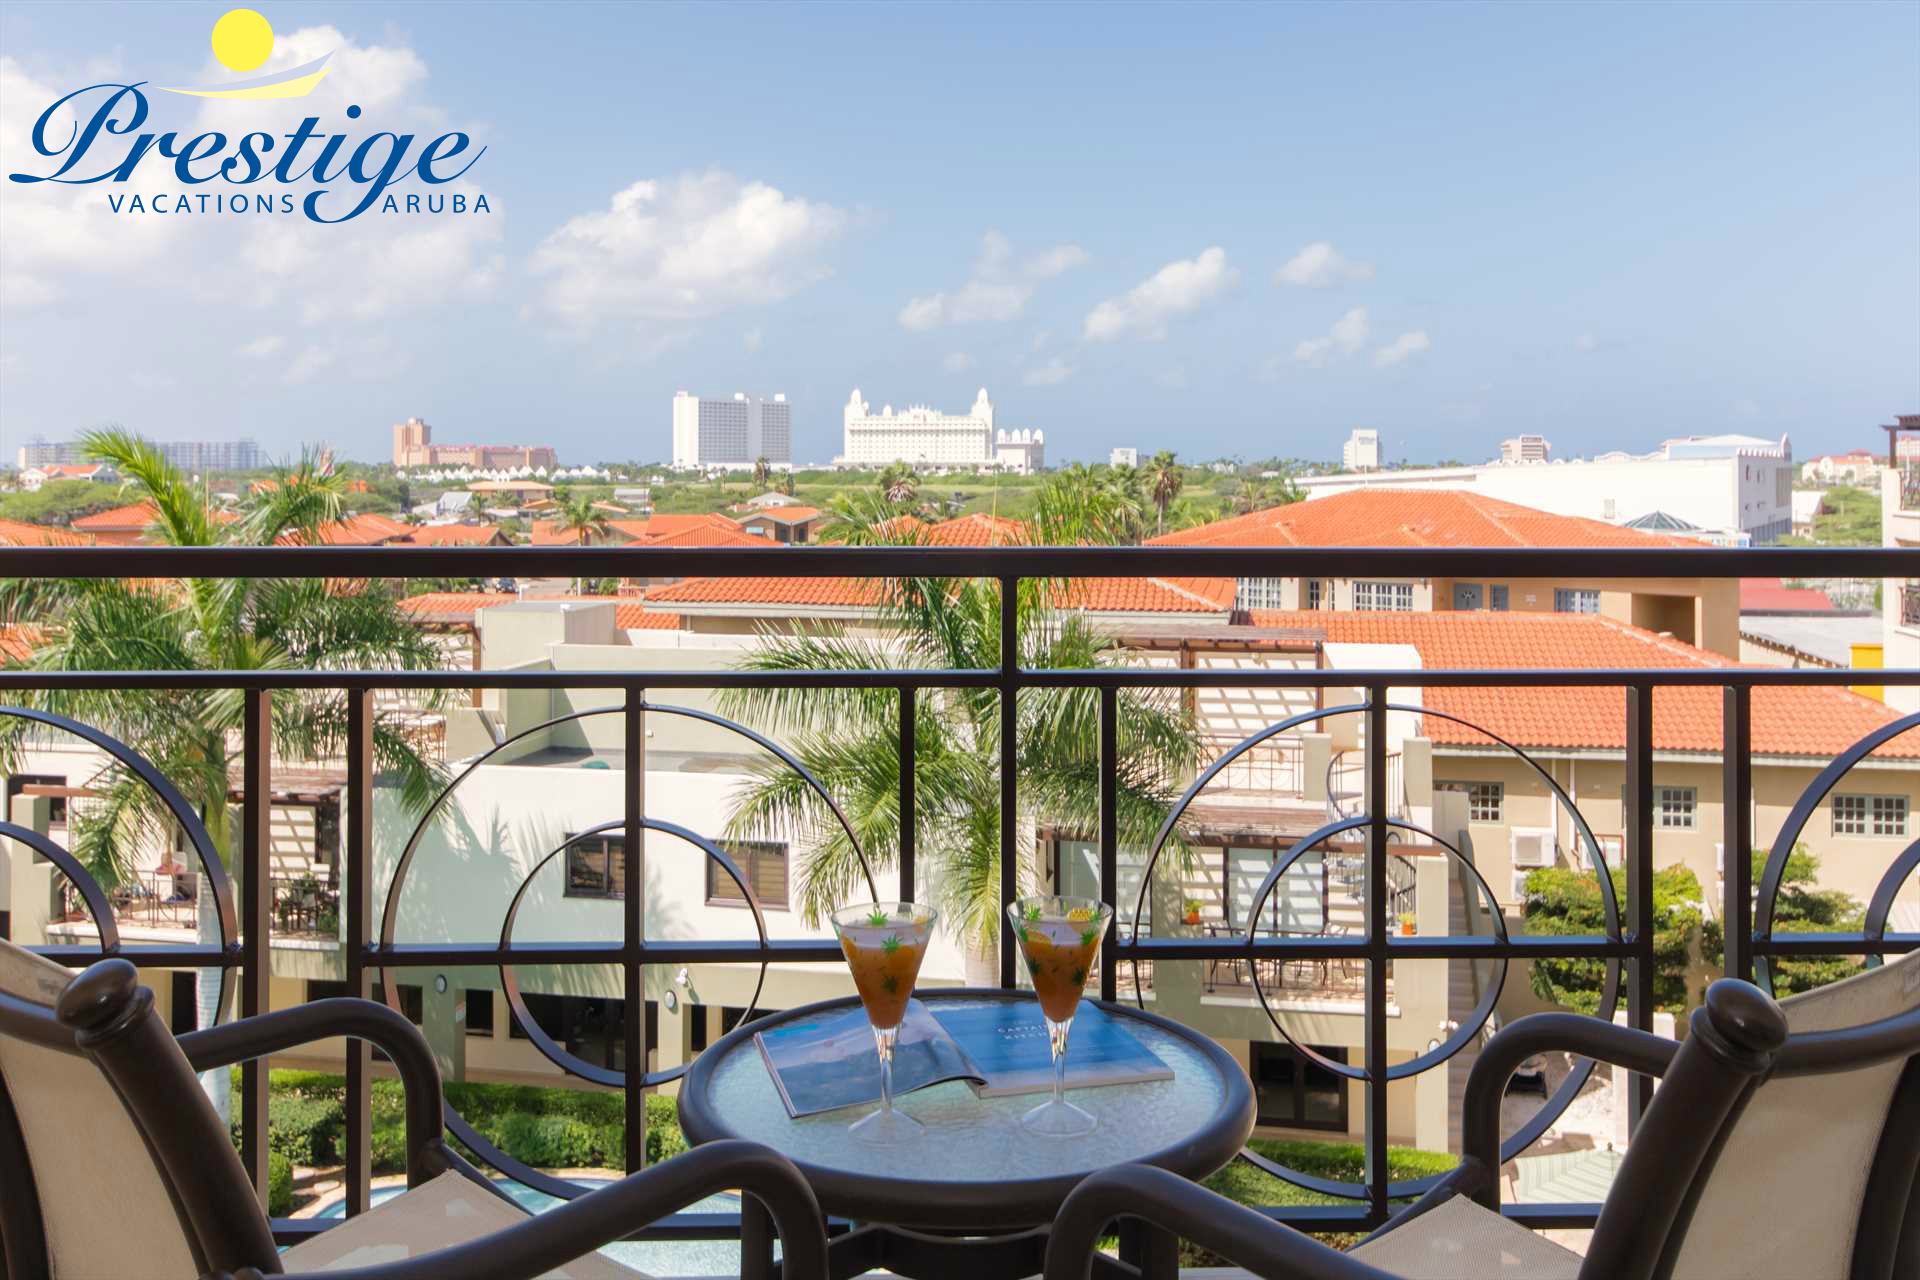 Welcome to the Divi Palm One-bedroom condo, your vacation home!